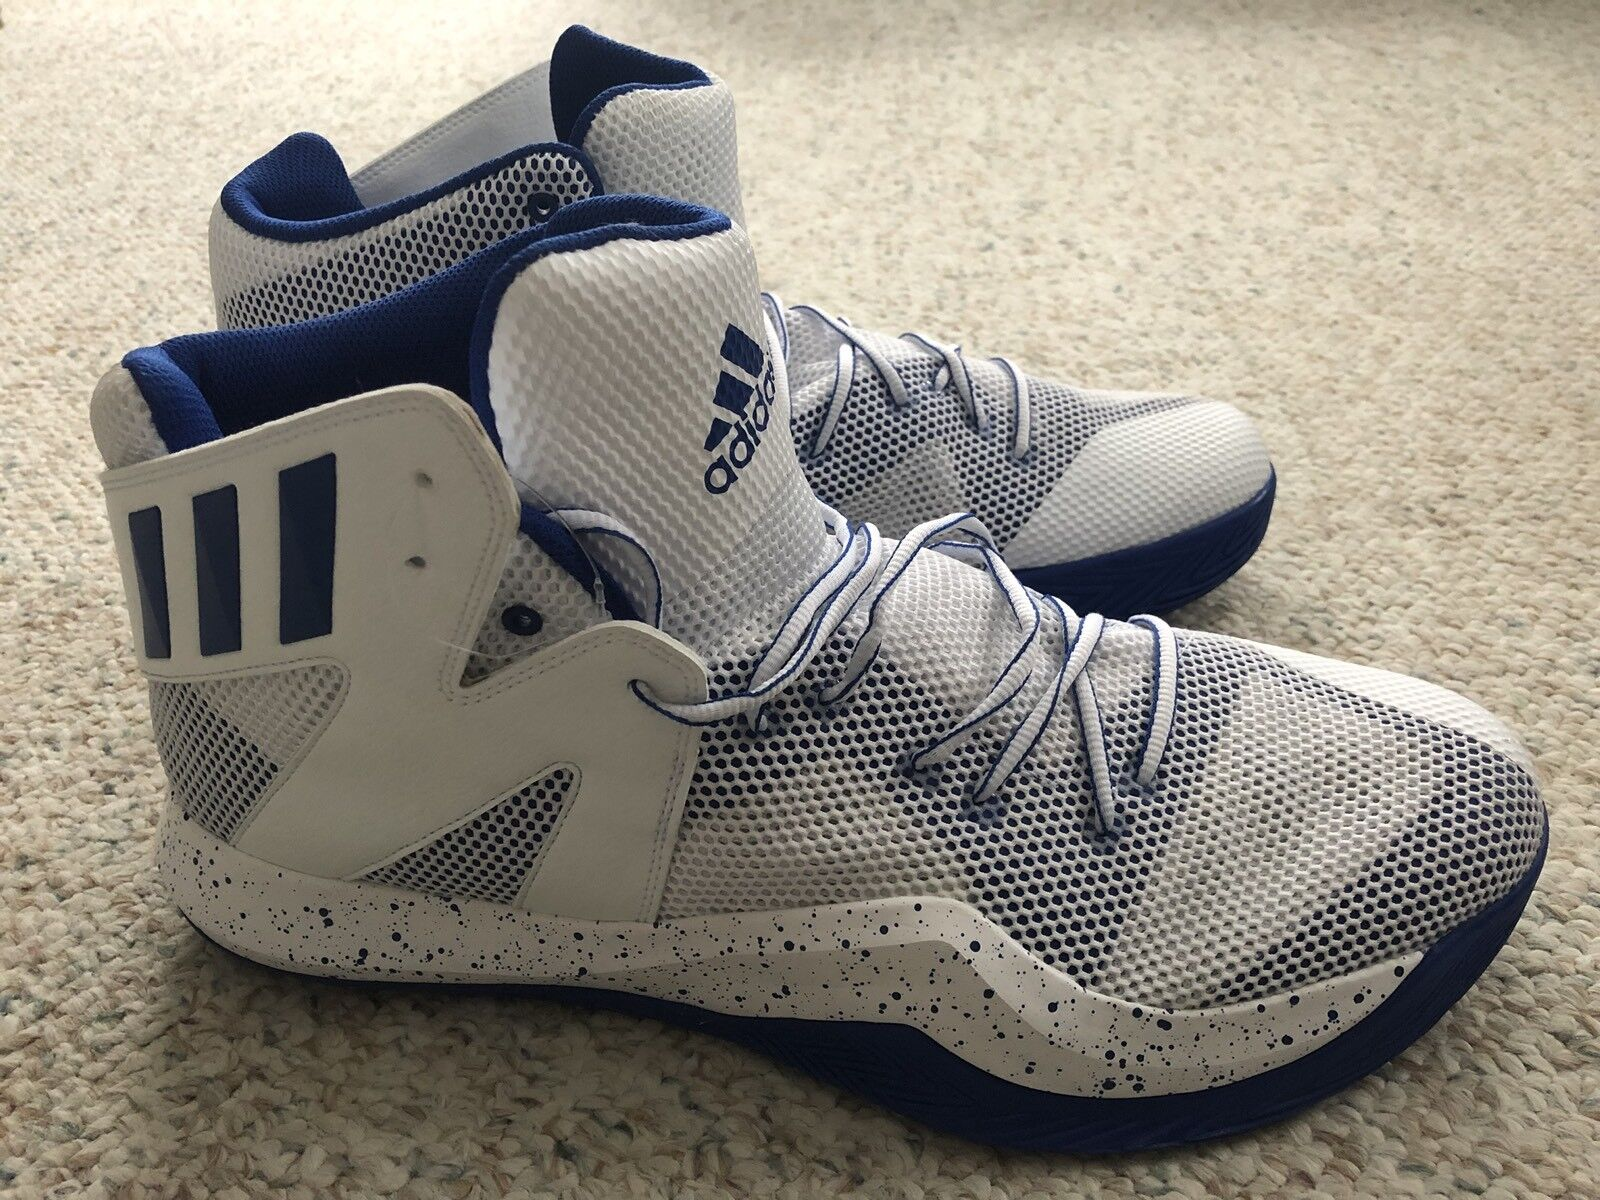 New Mens 16 ADIDAS Crazy Bounce Mid White Blue Basketball Shoes  B39301